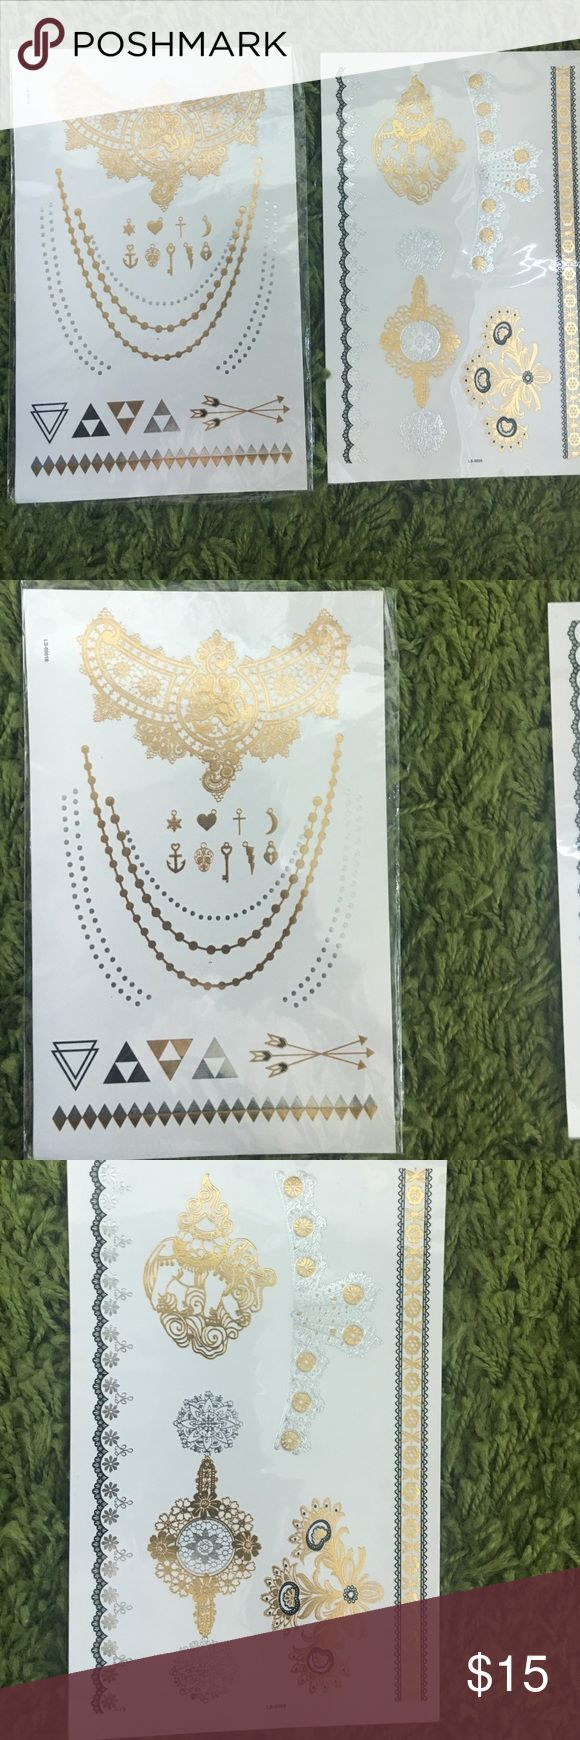 Cochella inspired flash tattoos fake tattoos Na Jewelry Bracelets